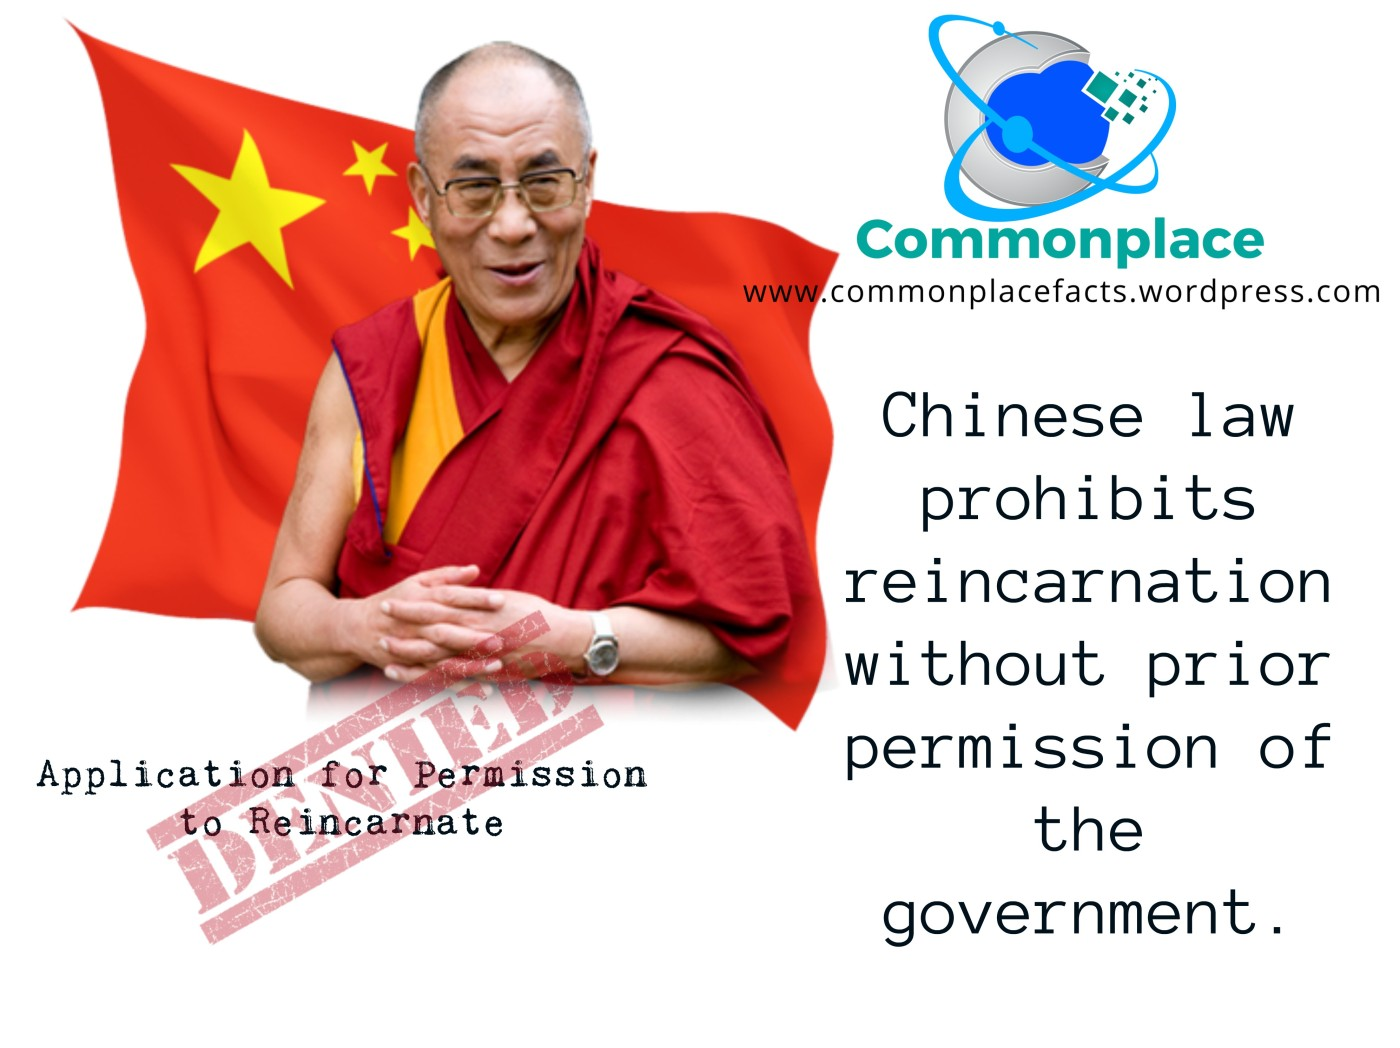 Dalai Lama reincarnation China regulations